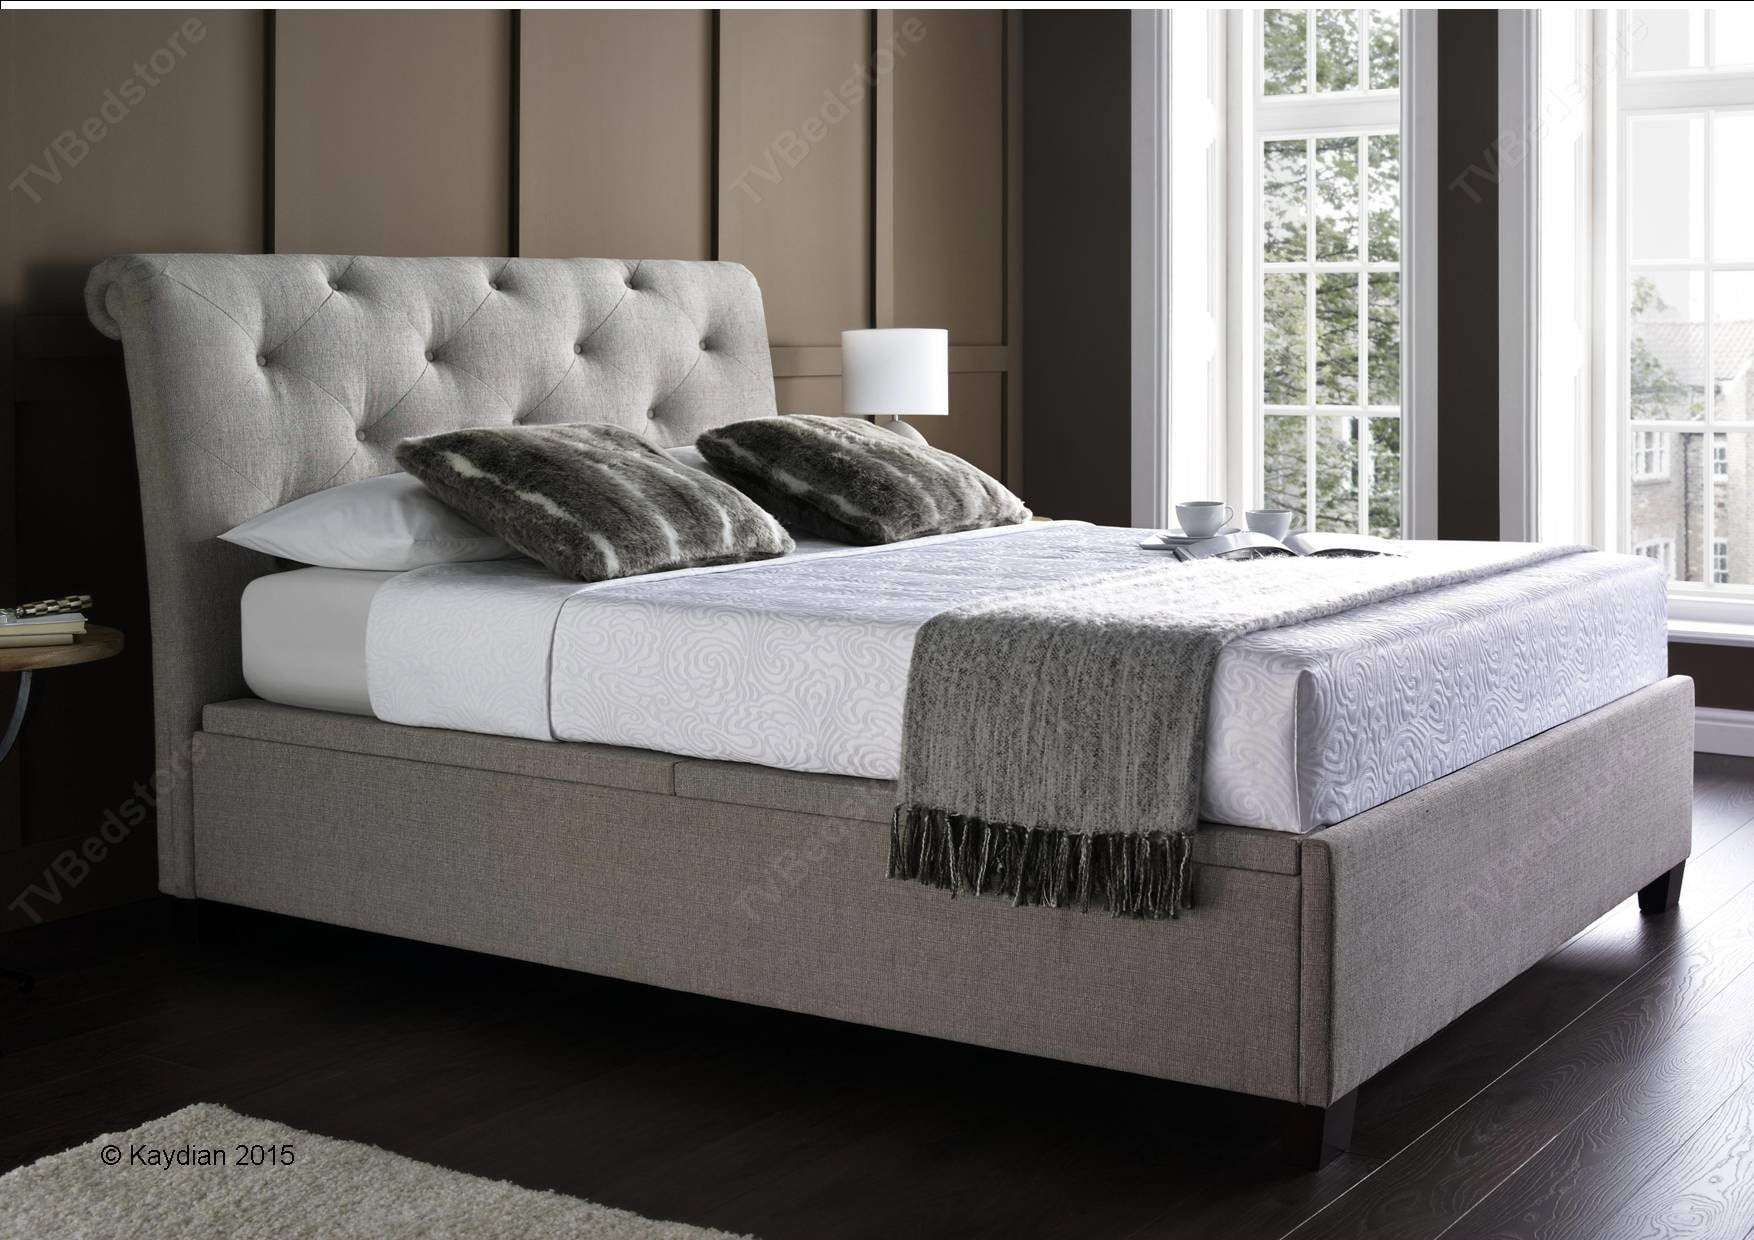 King Size Tv Bed Super King Size Ottoman Bed